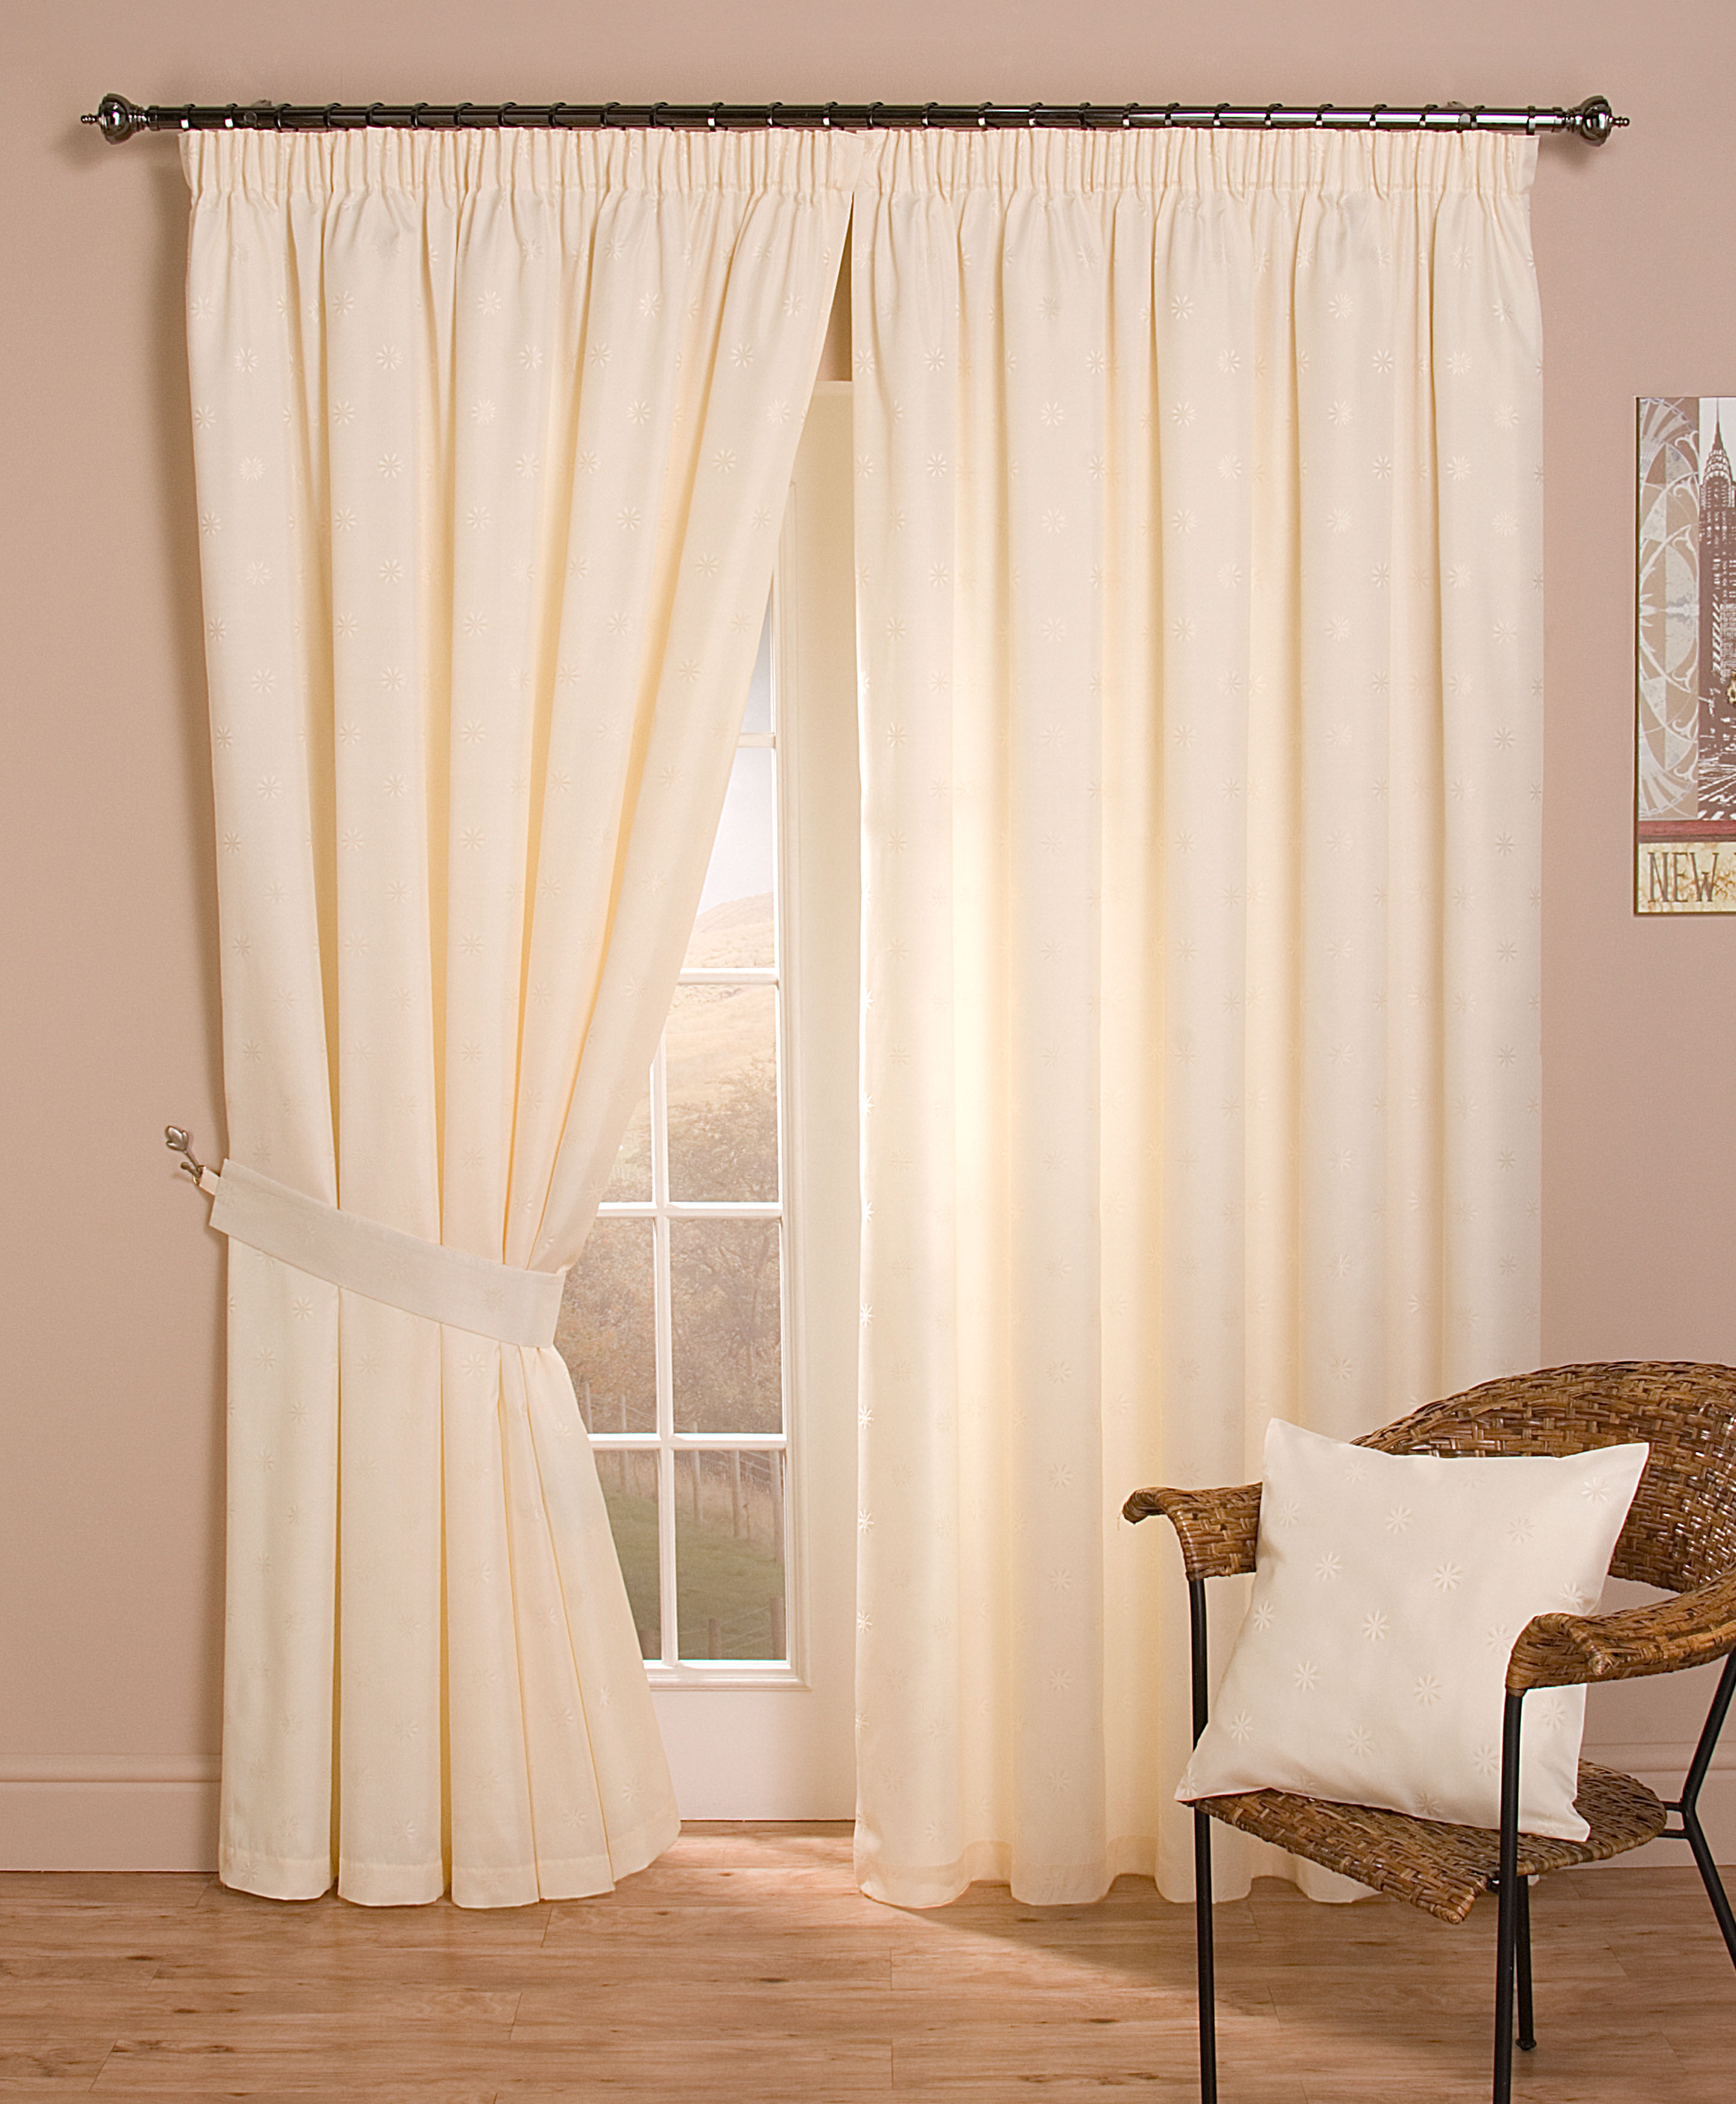 curtain dunelm mill lined check eyelet highland door natural beaded curtains